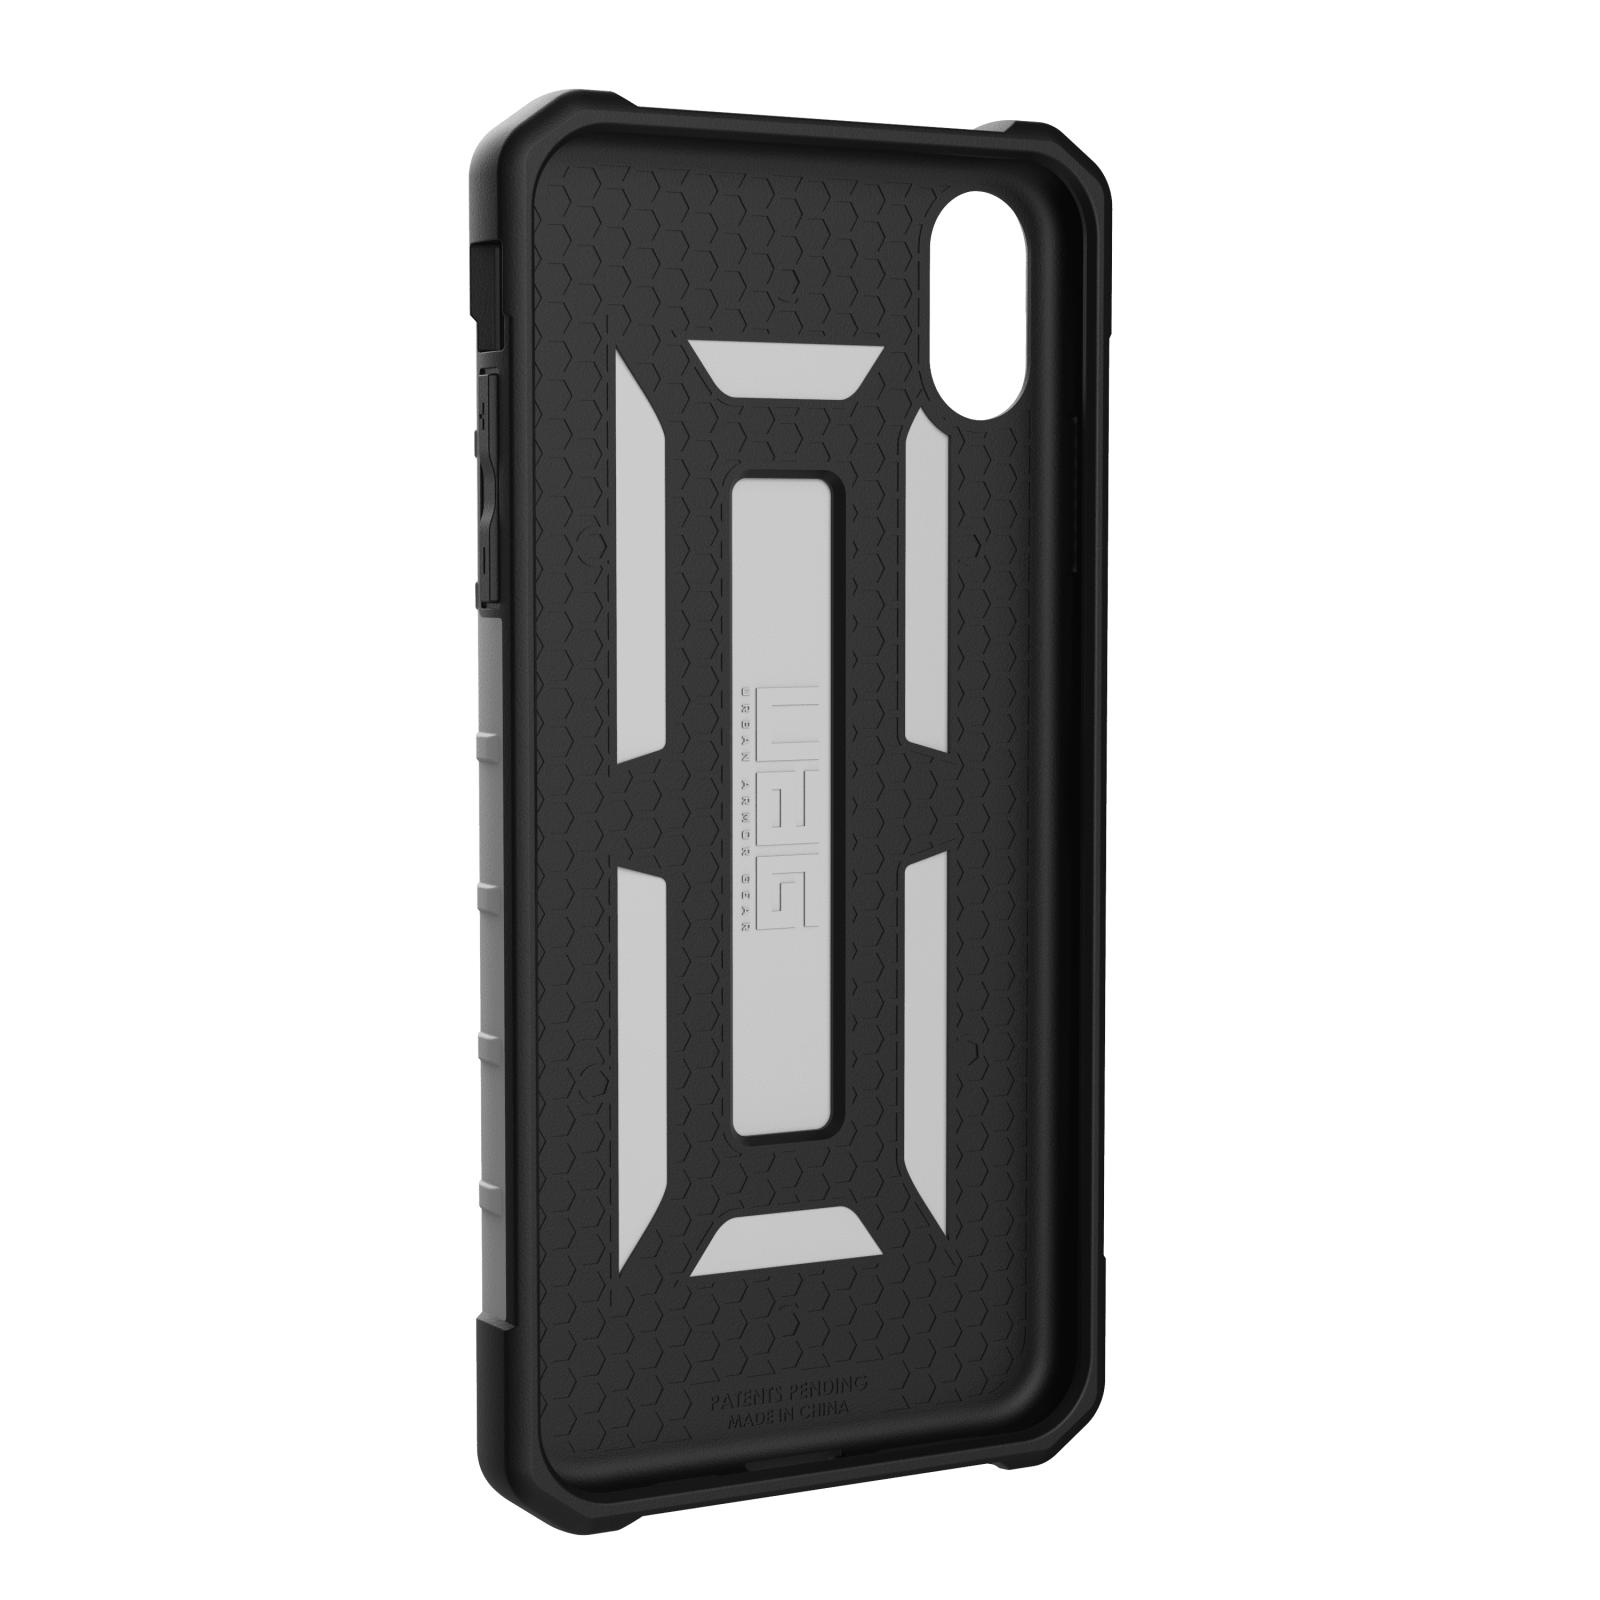 ỐP LƯNG UAG PATHFINDER CHO IPHONE XS MAX [6.5-INCH]